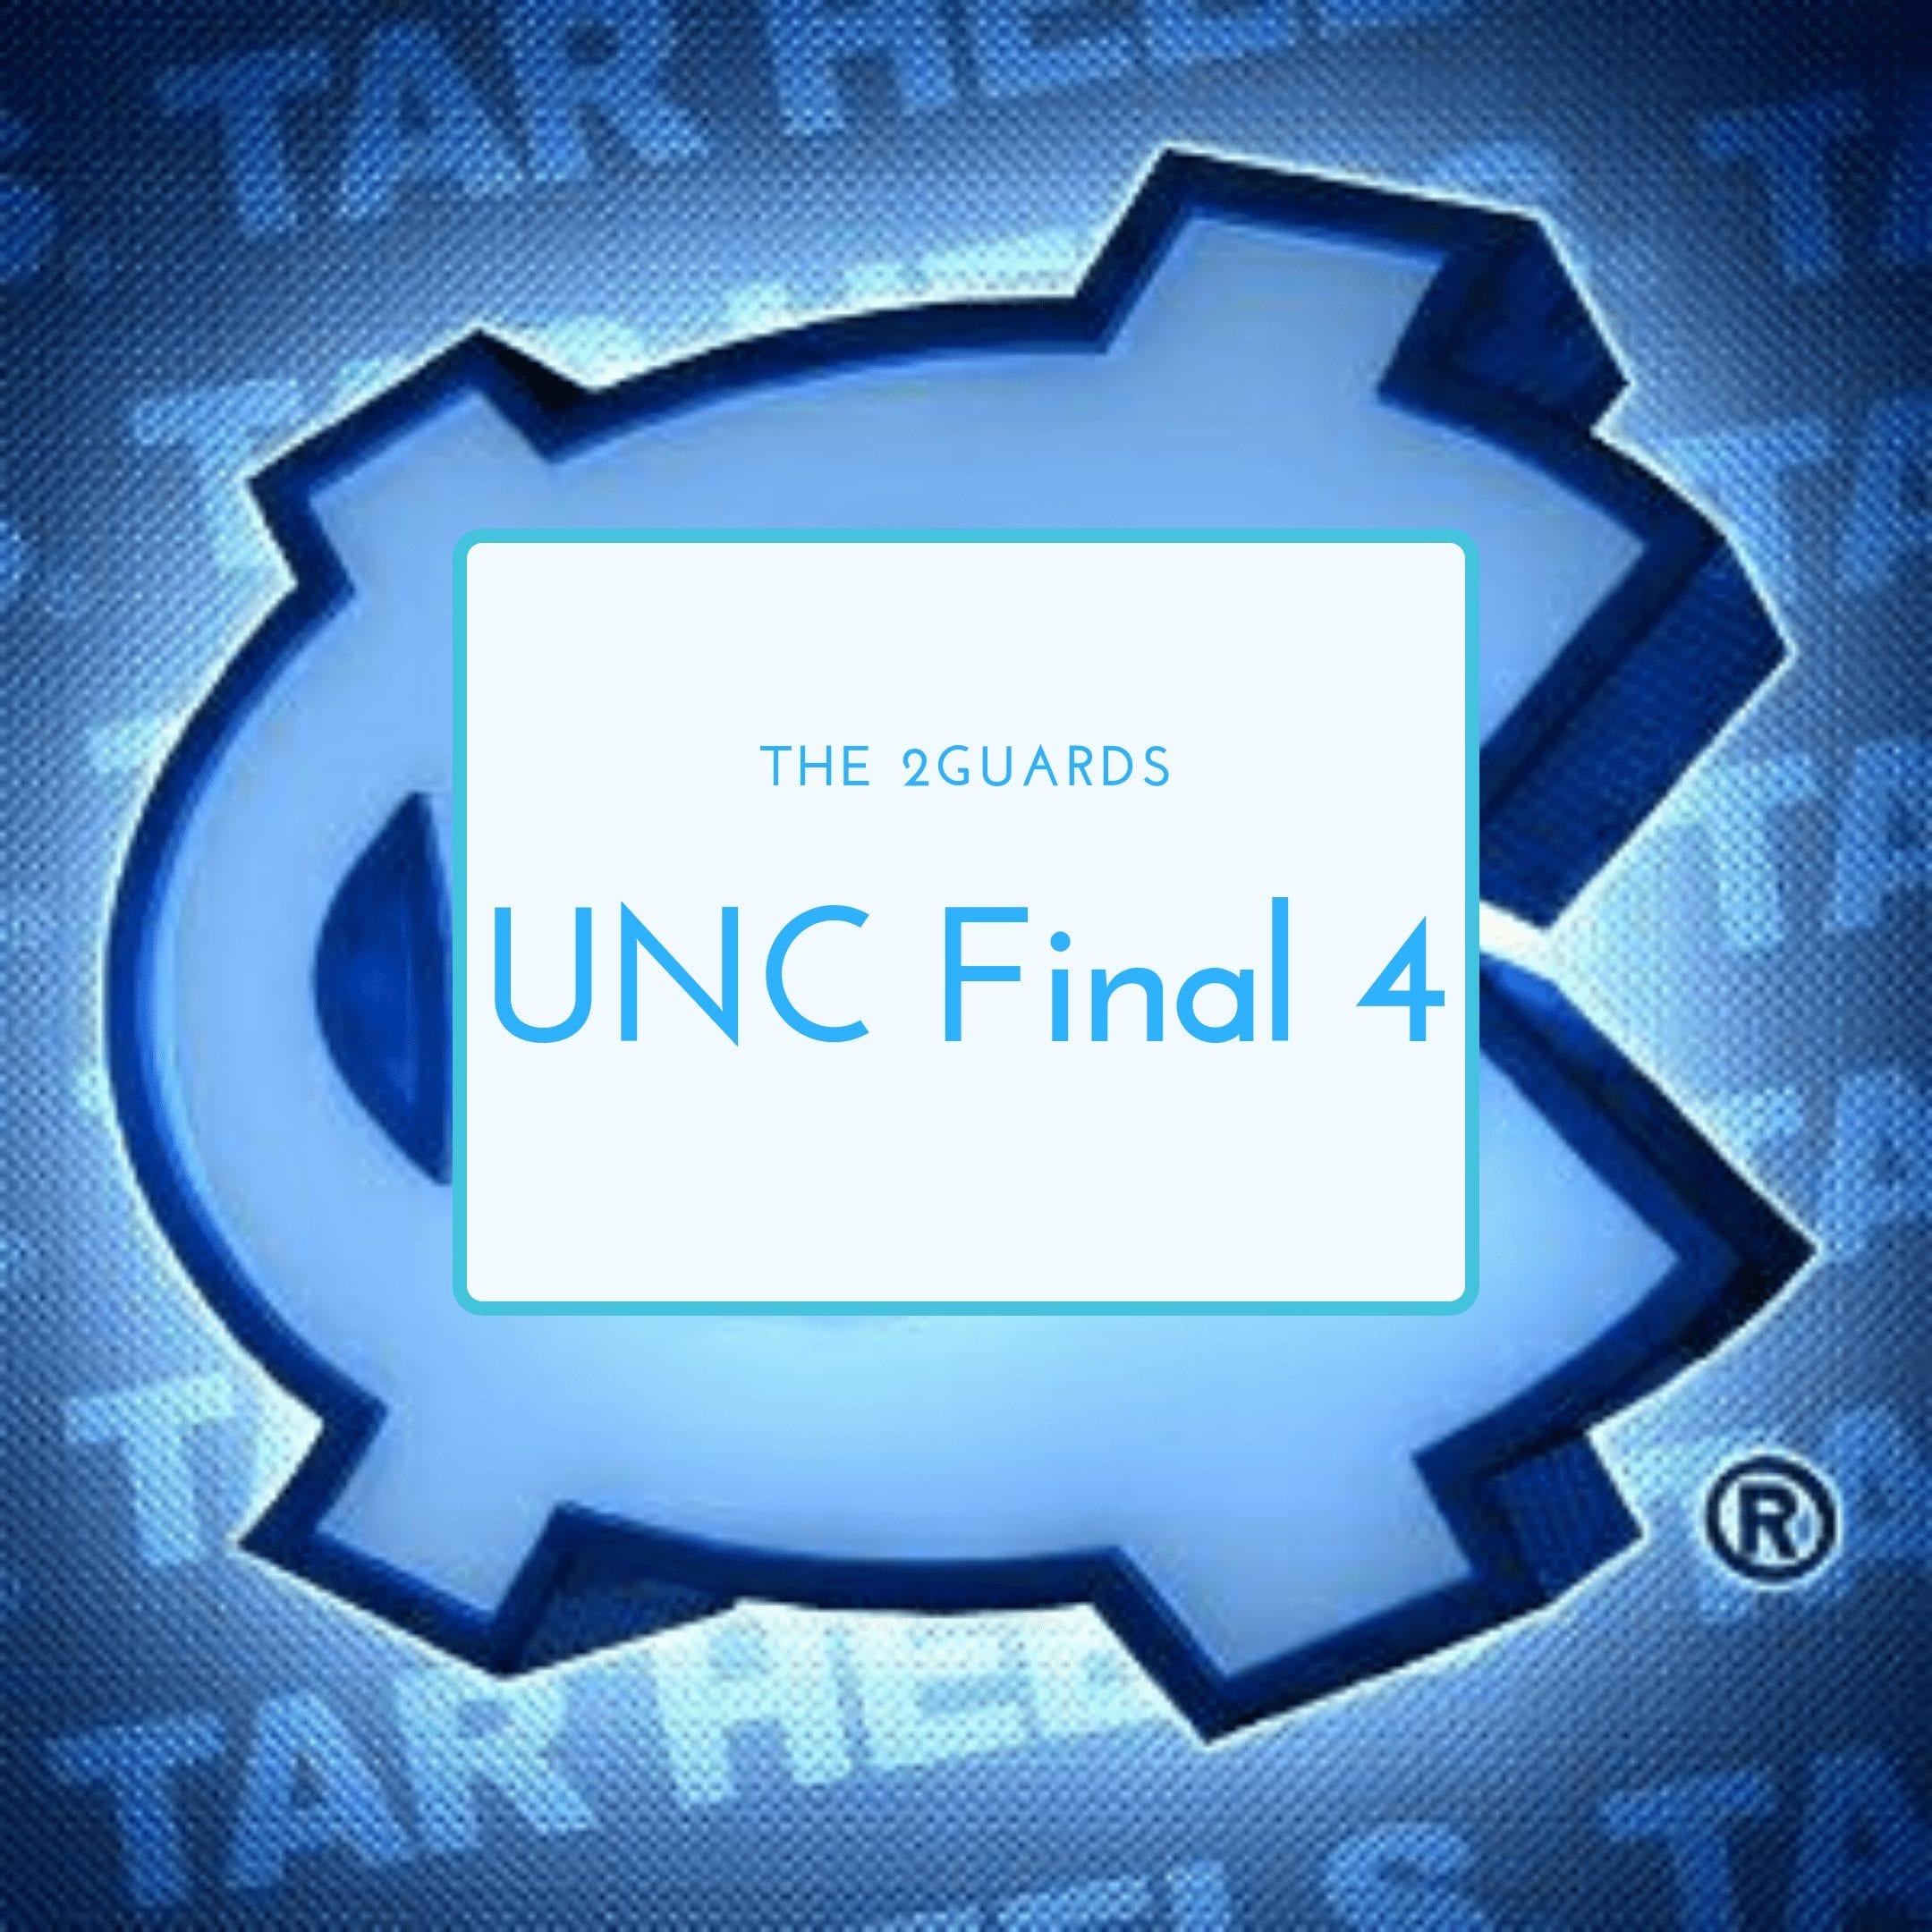 PeaceDot Sports Presents     UNC Final 4: 2 guard Final via @PhillyWhat